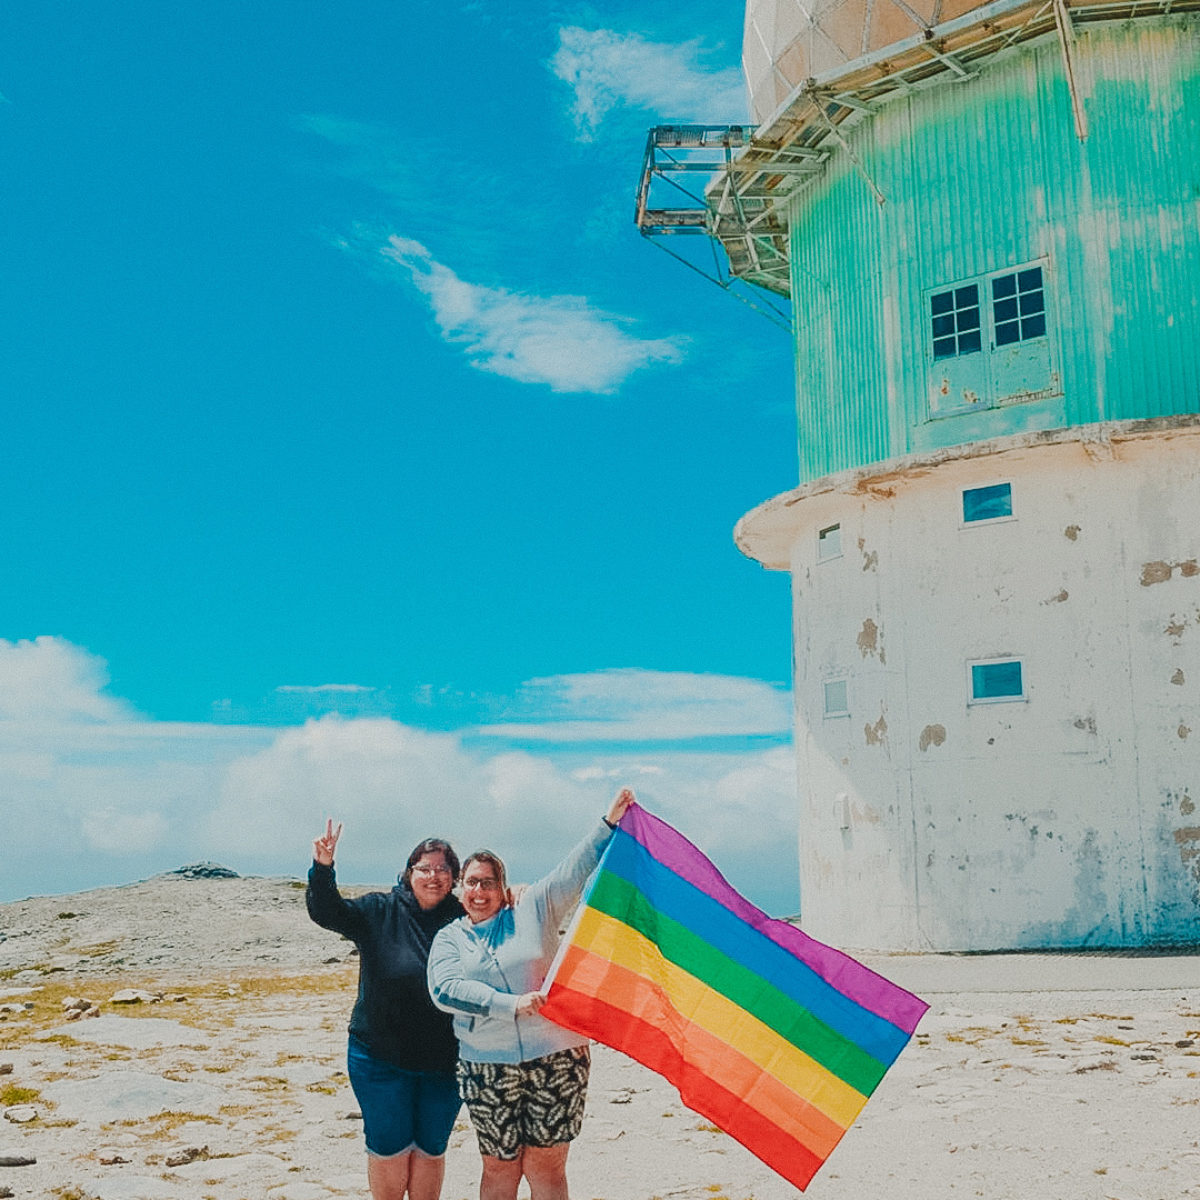 Lesbian couple holding rainbow flag in Portugal